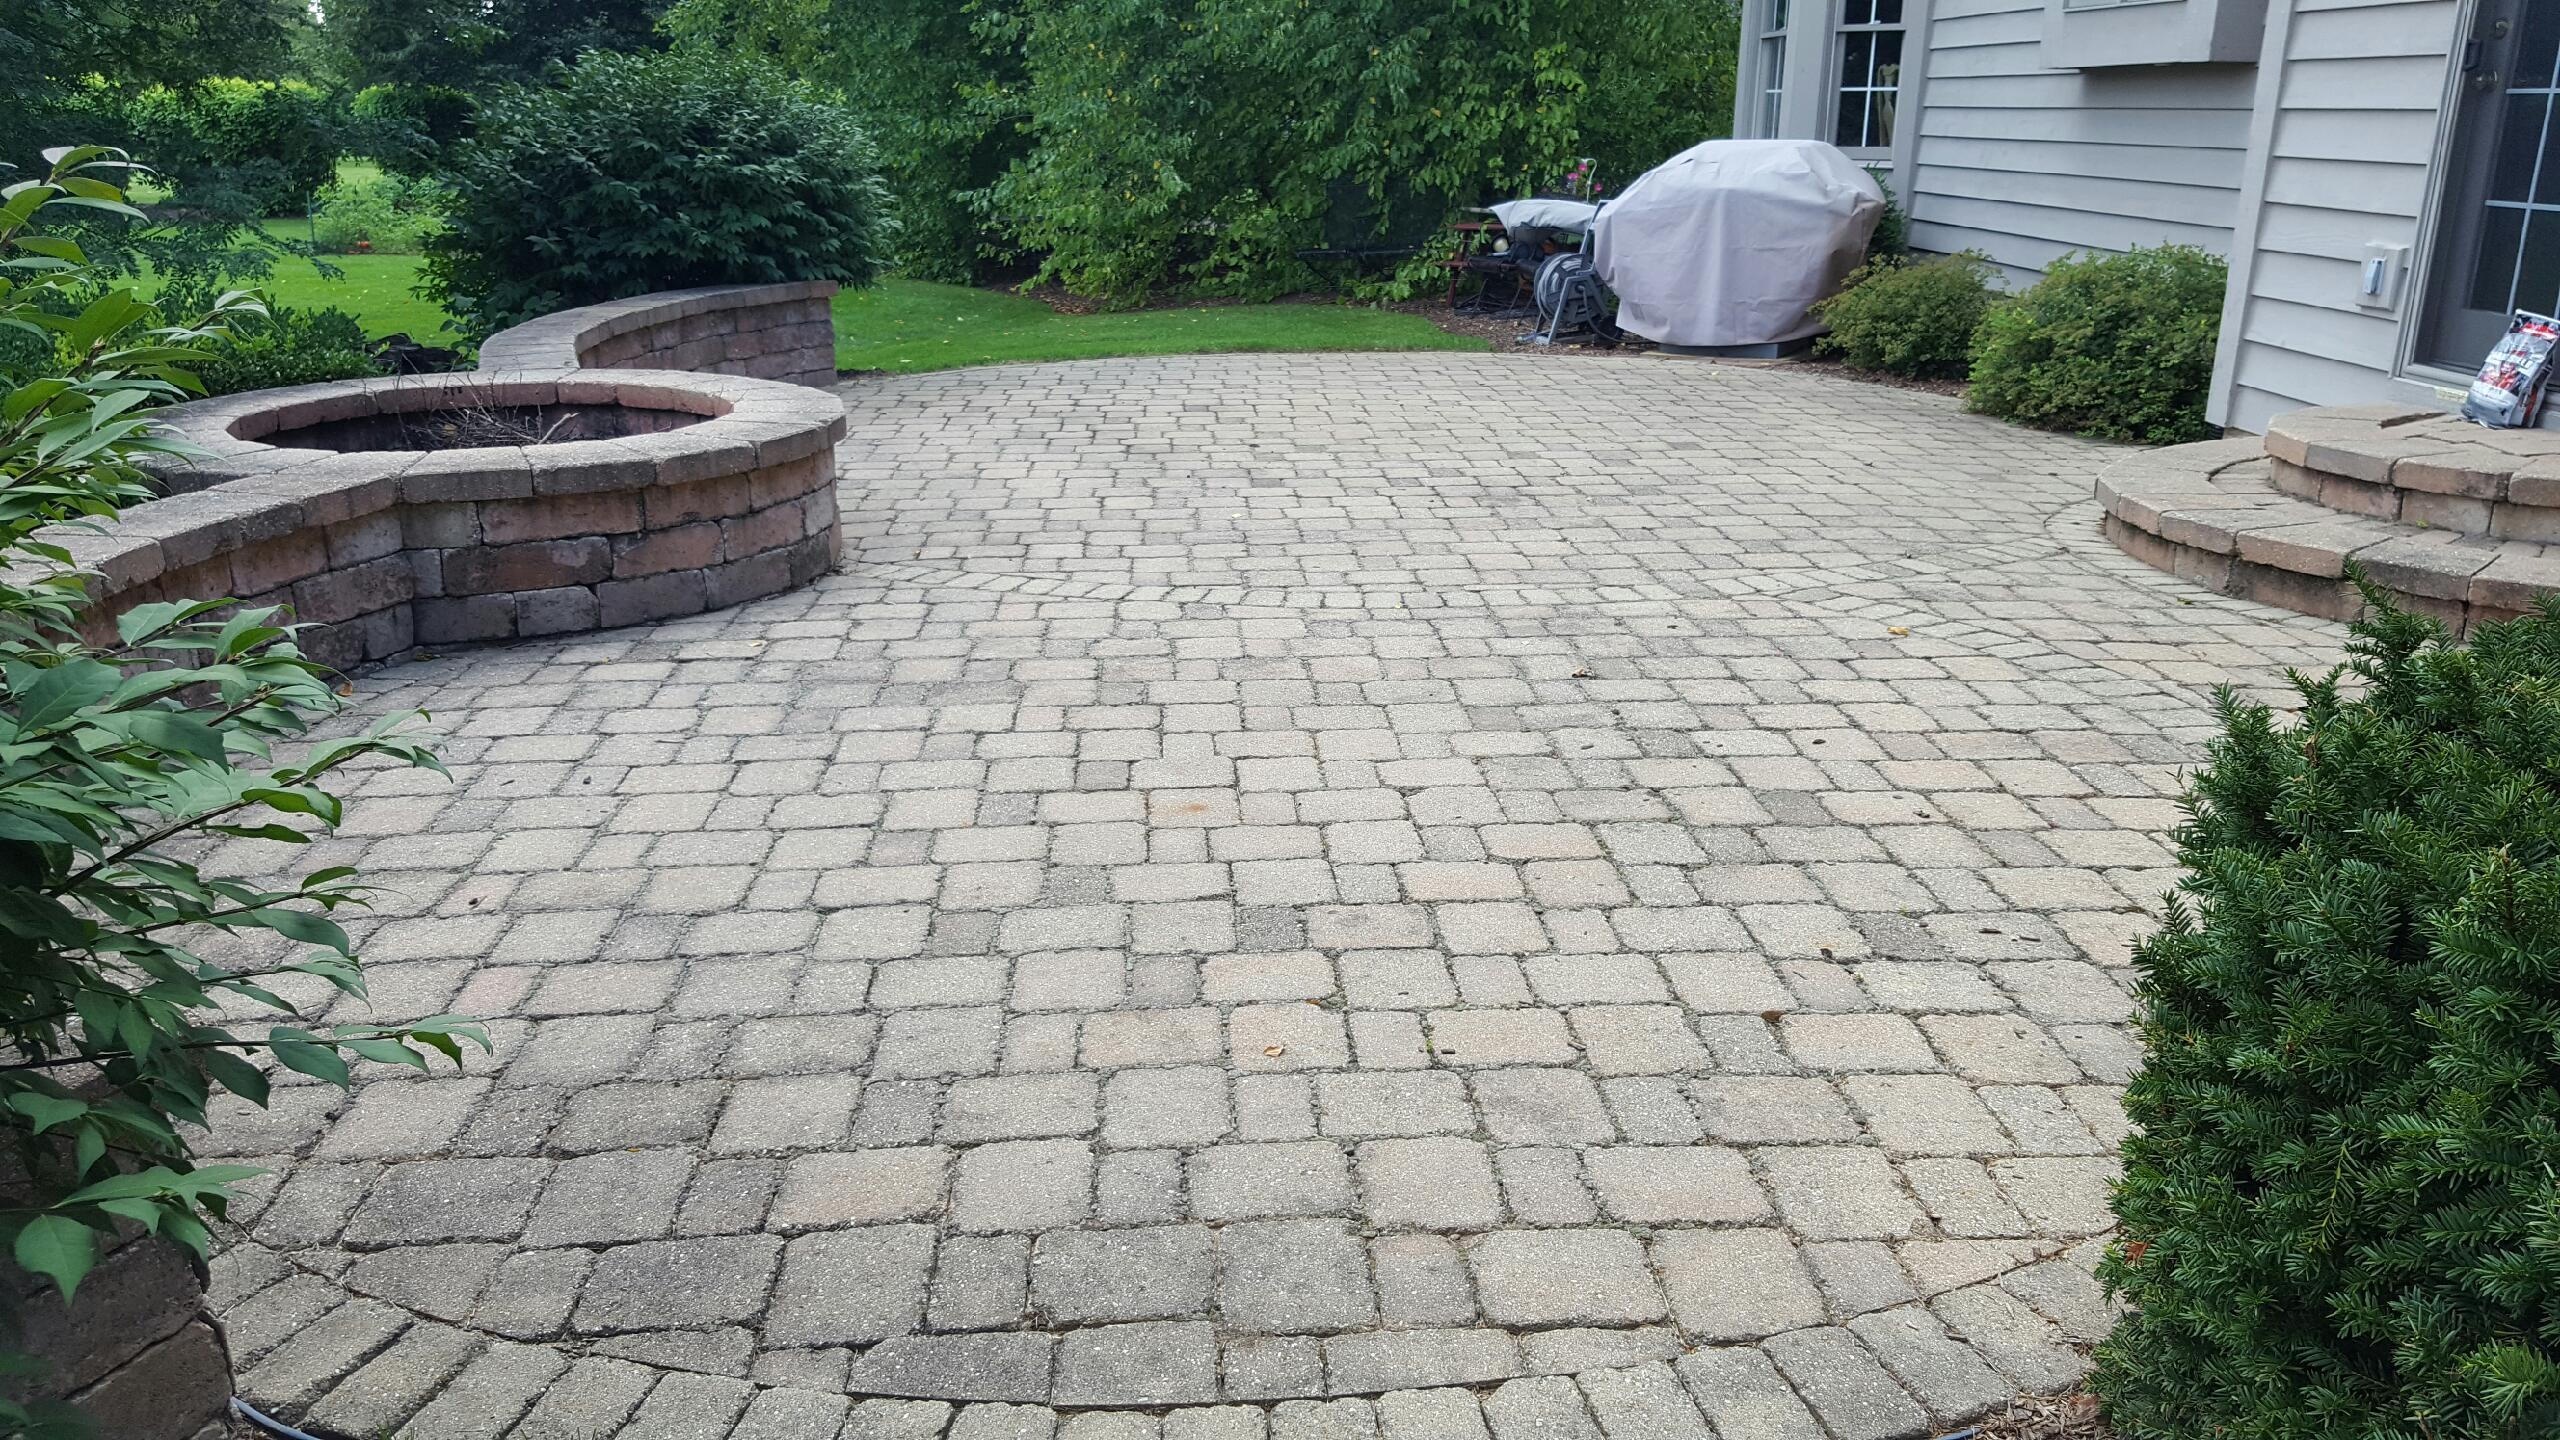 Brick PAver cleaning and sealing in St. Charles, IL